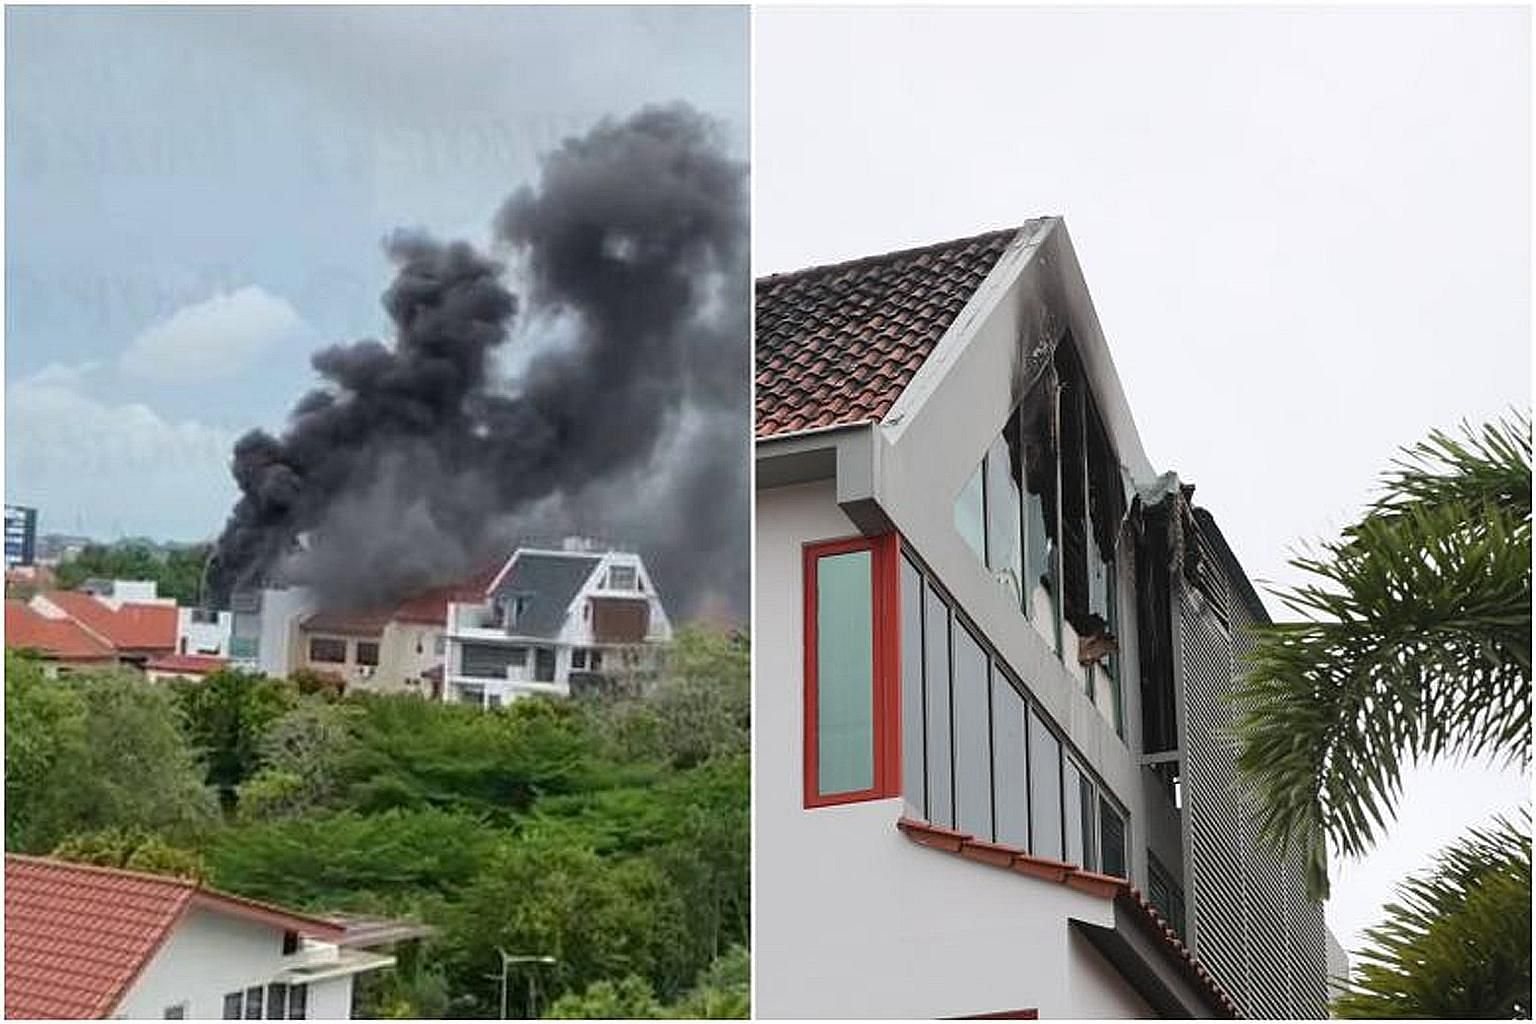 Black fumes billowing (far left) from the three-storey house at 7 Peakville Terrace in Bedok on Sunday. Firefighters used a water jet to put out the fire, involving items on the top floor (left). PHOTOS: LIANHE WANBAO, LIANHE ZAOBAO